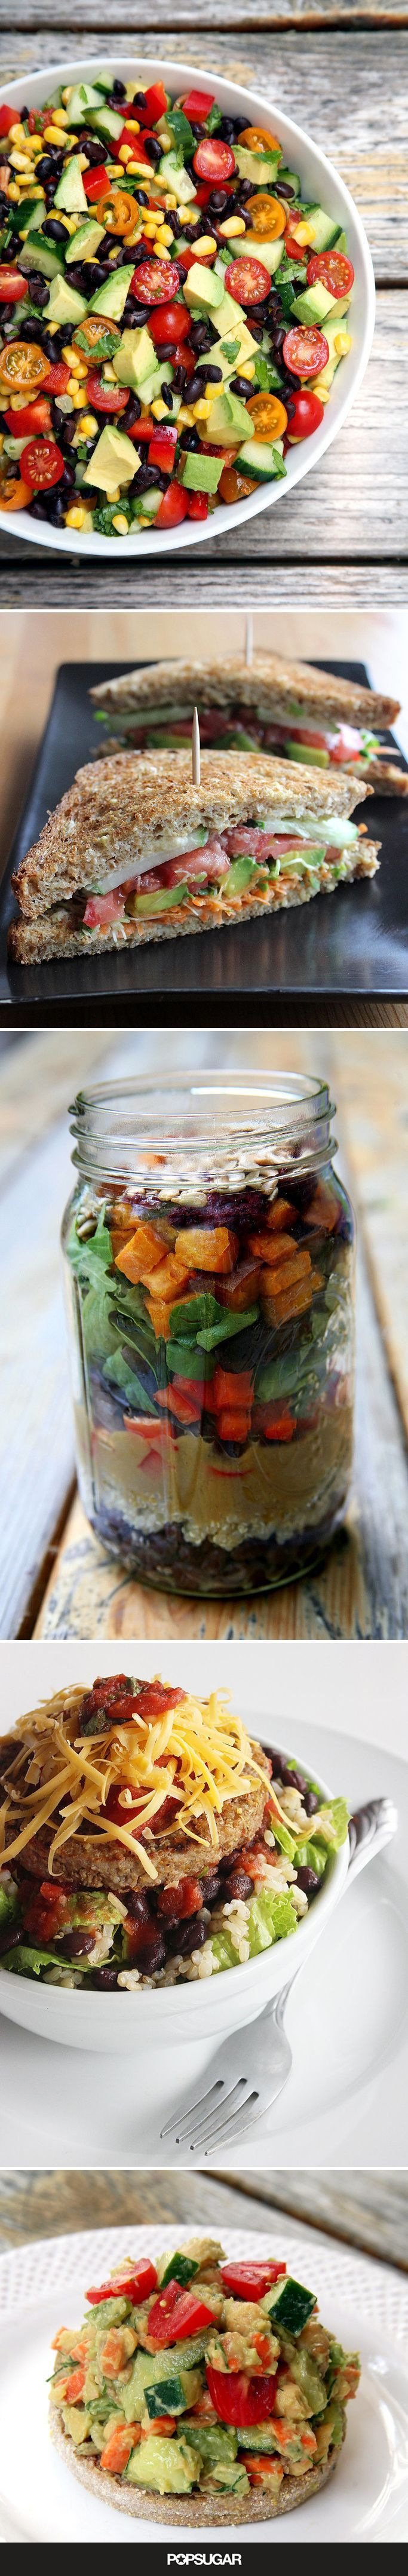 These Lunch Recipes Follow the Perfect Equation For Weight Loss